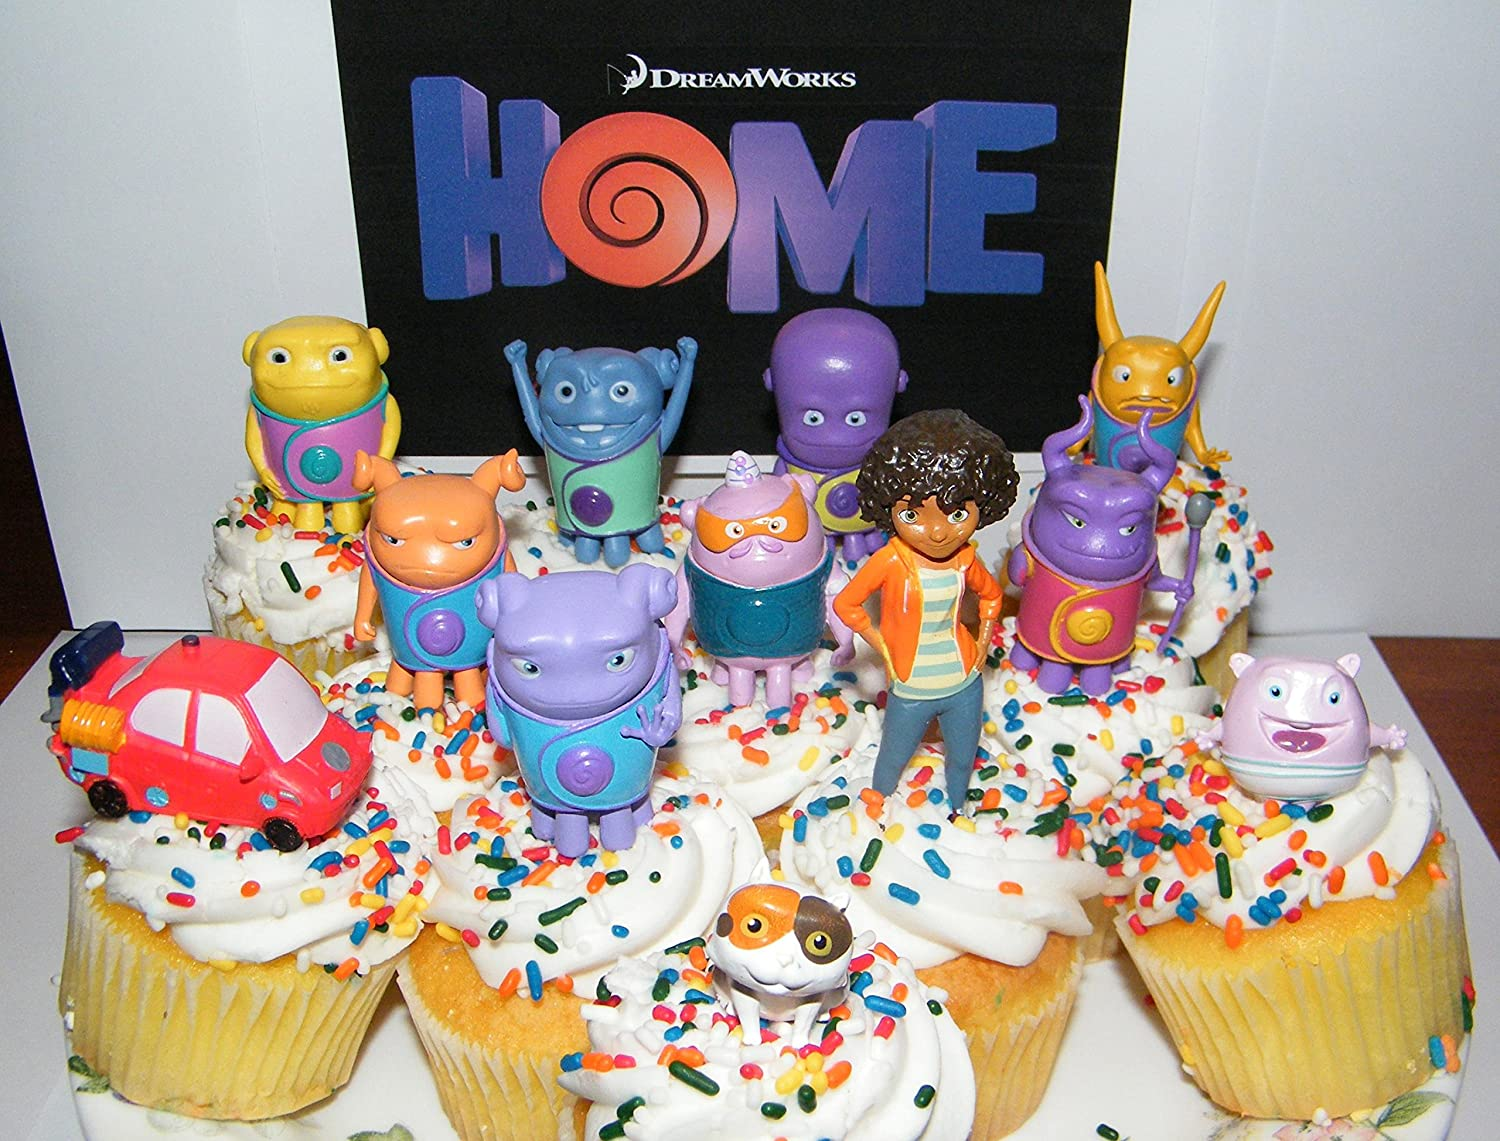 Amazoncom Dreamworks Home Figure Set of 13 Deluxe Cake Toppers